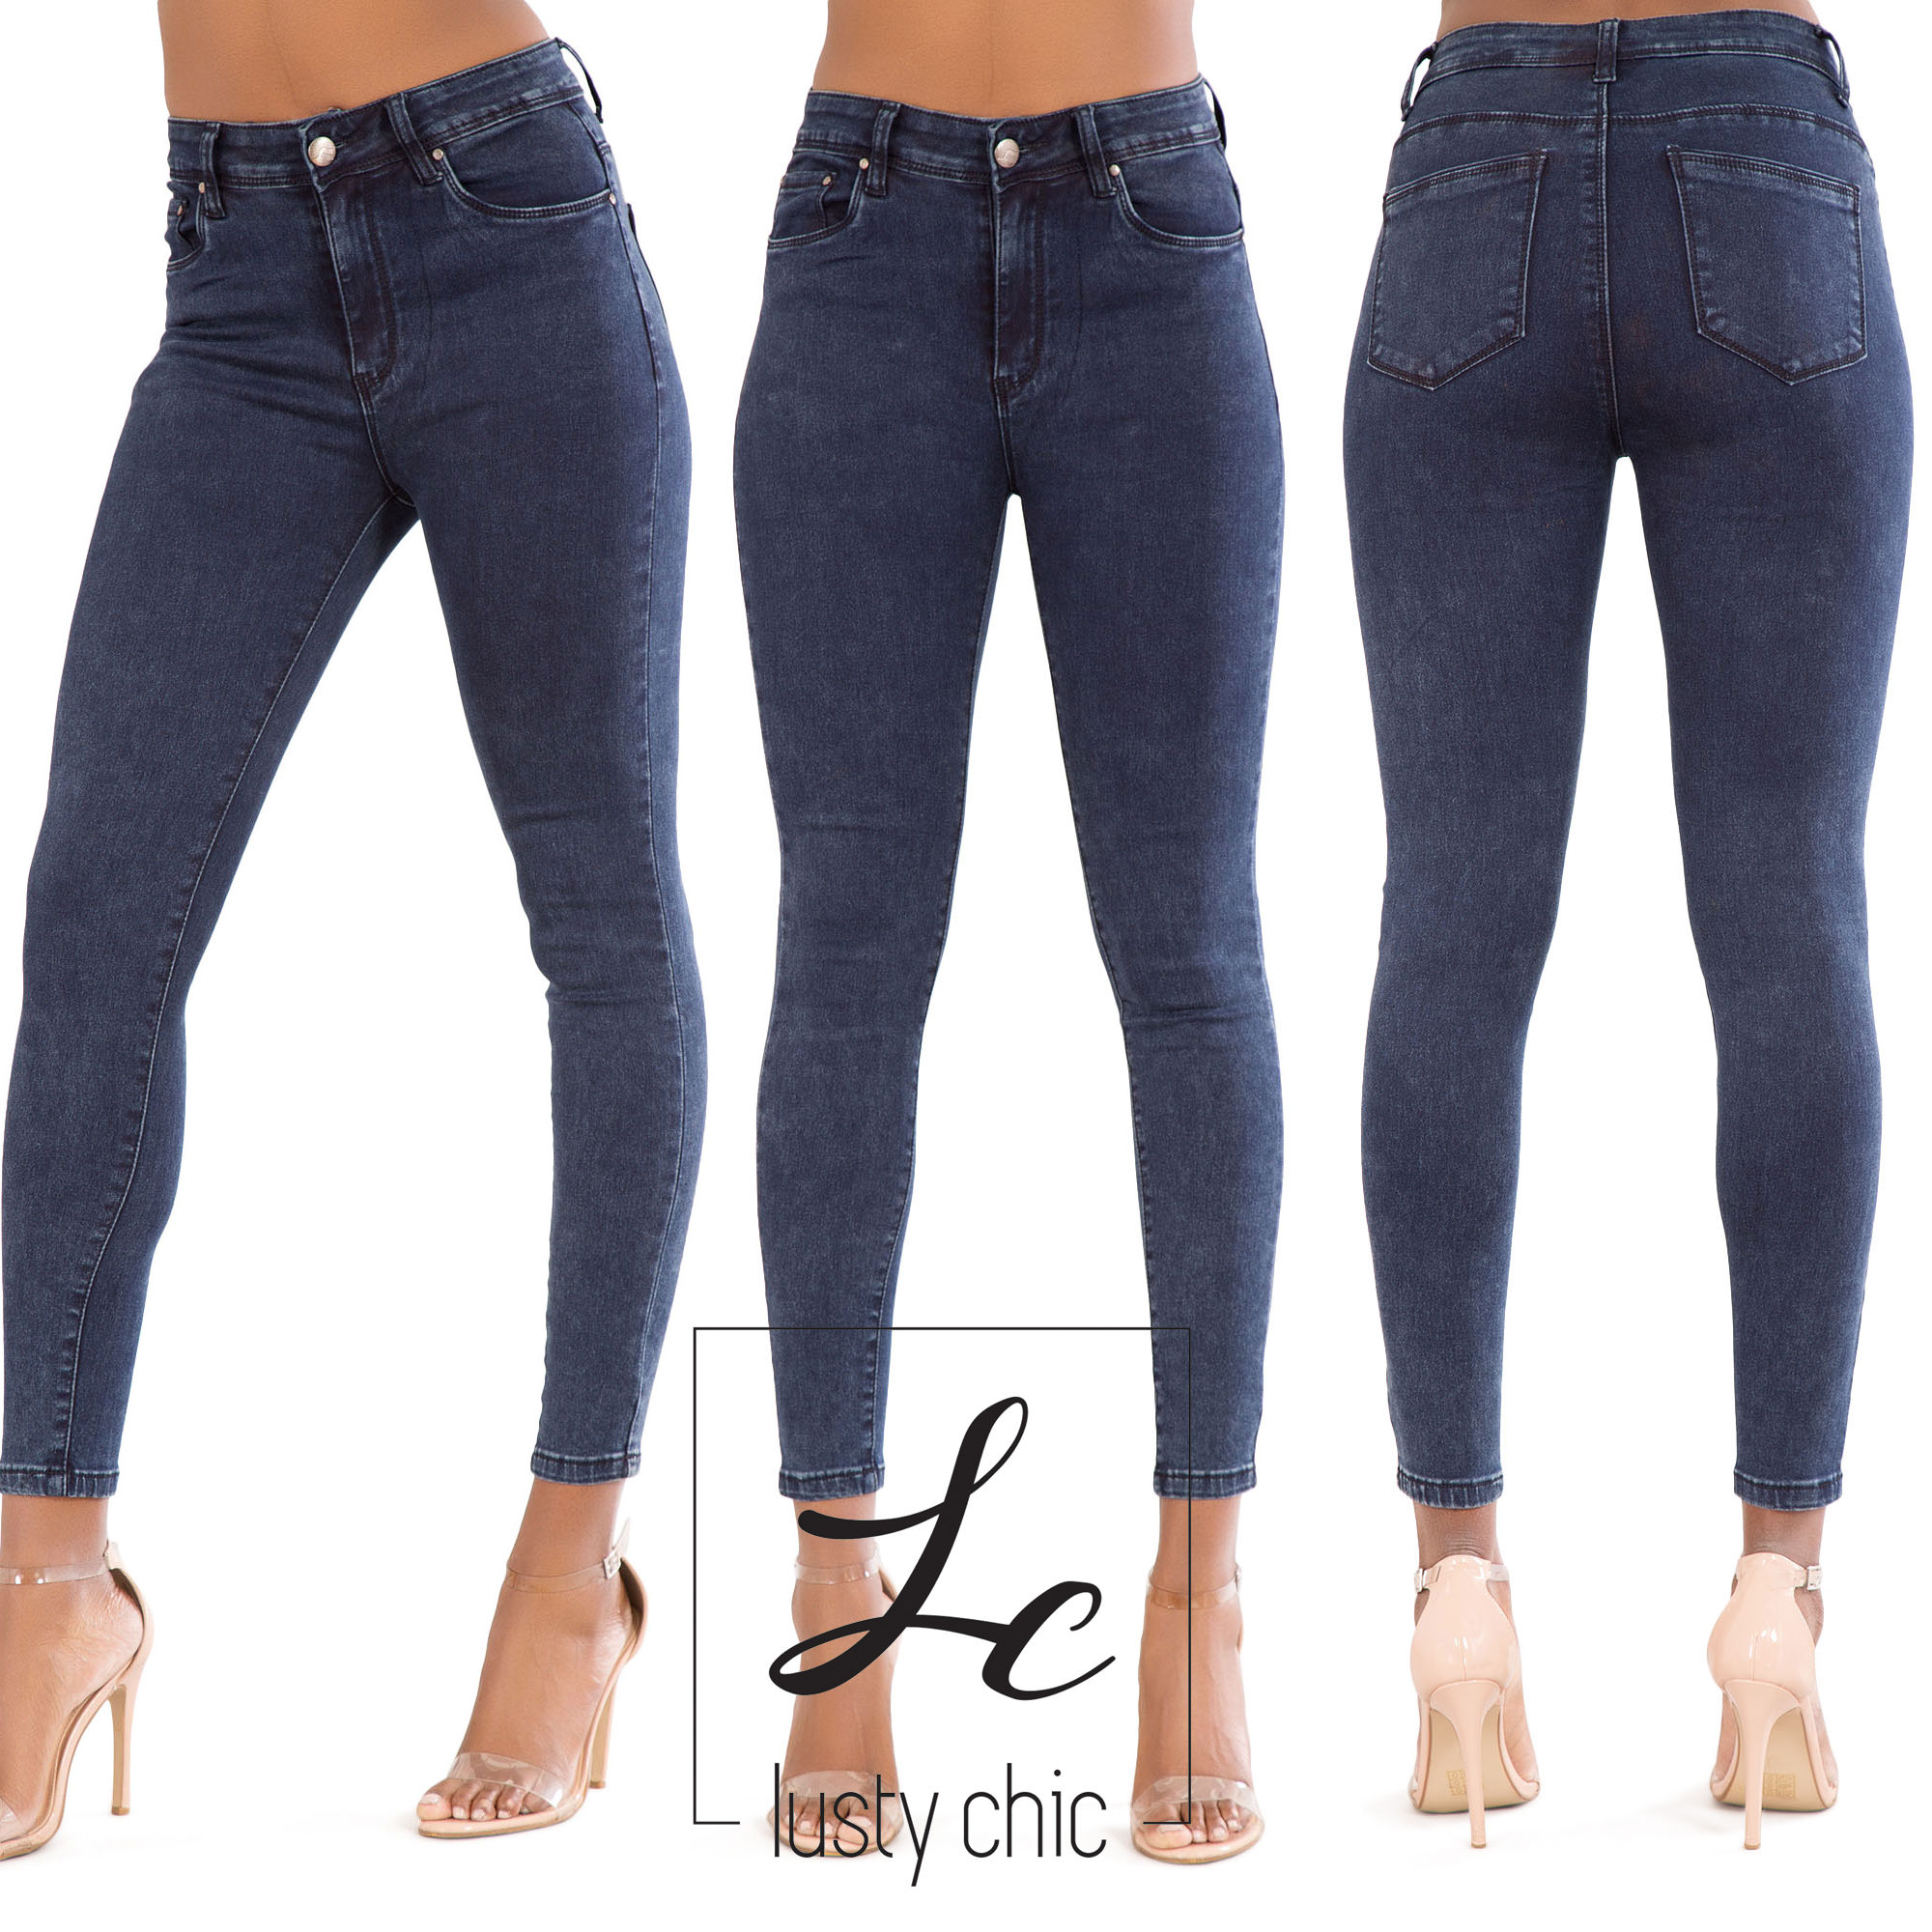 High waisted jeans are trendy and every woman needs a few pairs! Keep it classic with a dark wash legging or add a little flare with distressing or embroidery. Our Girlfriend jeans let you keep the comfort and show off your waist.